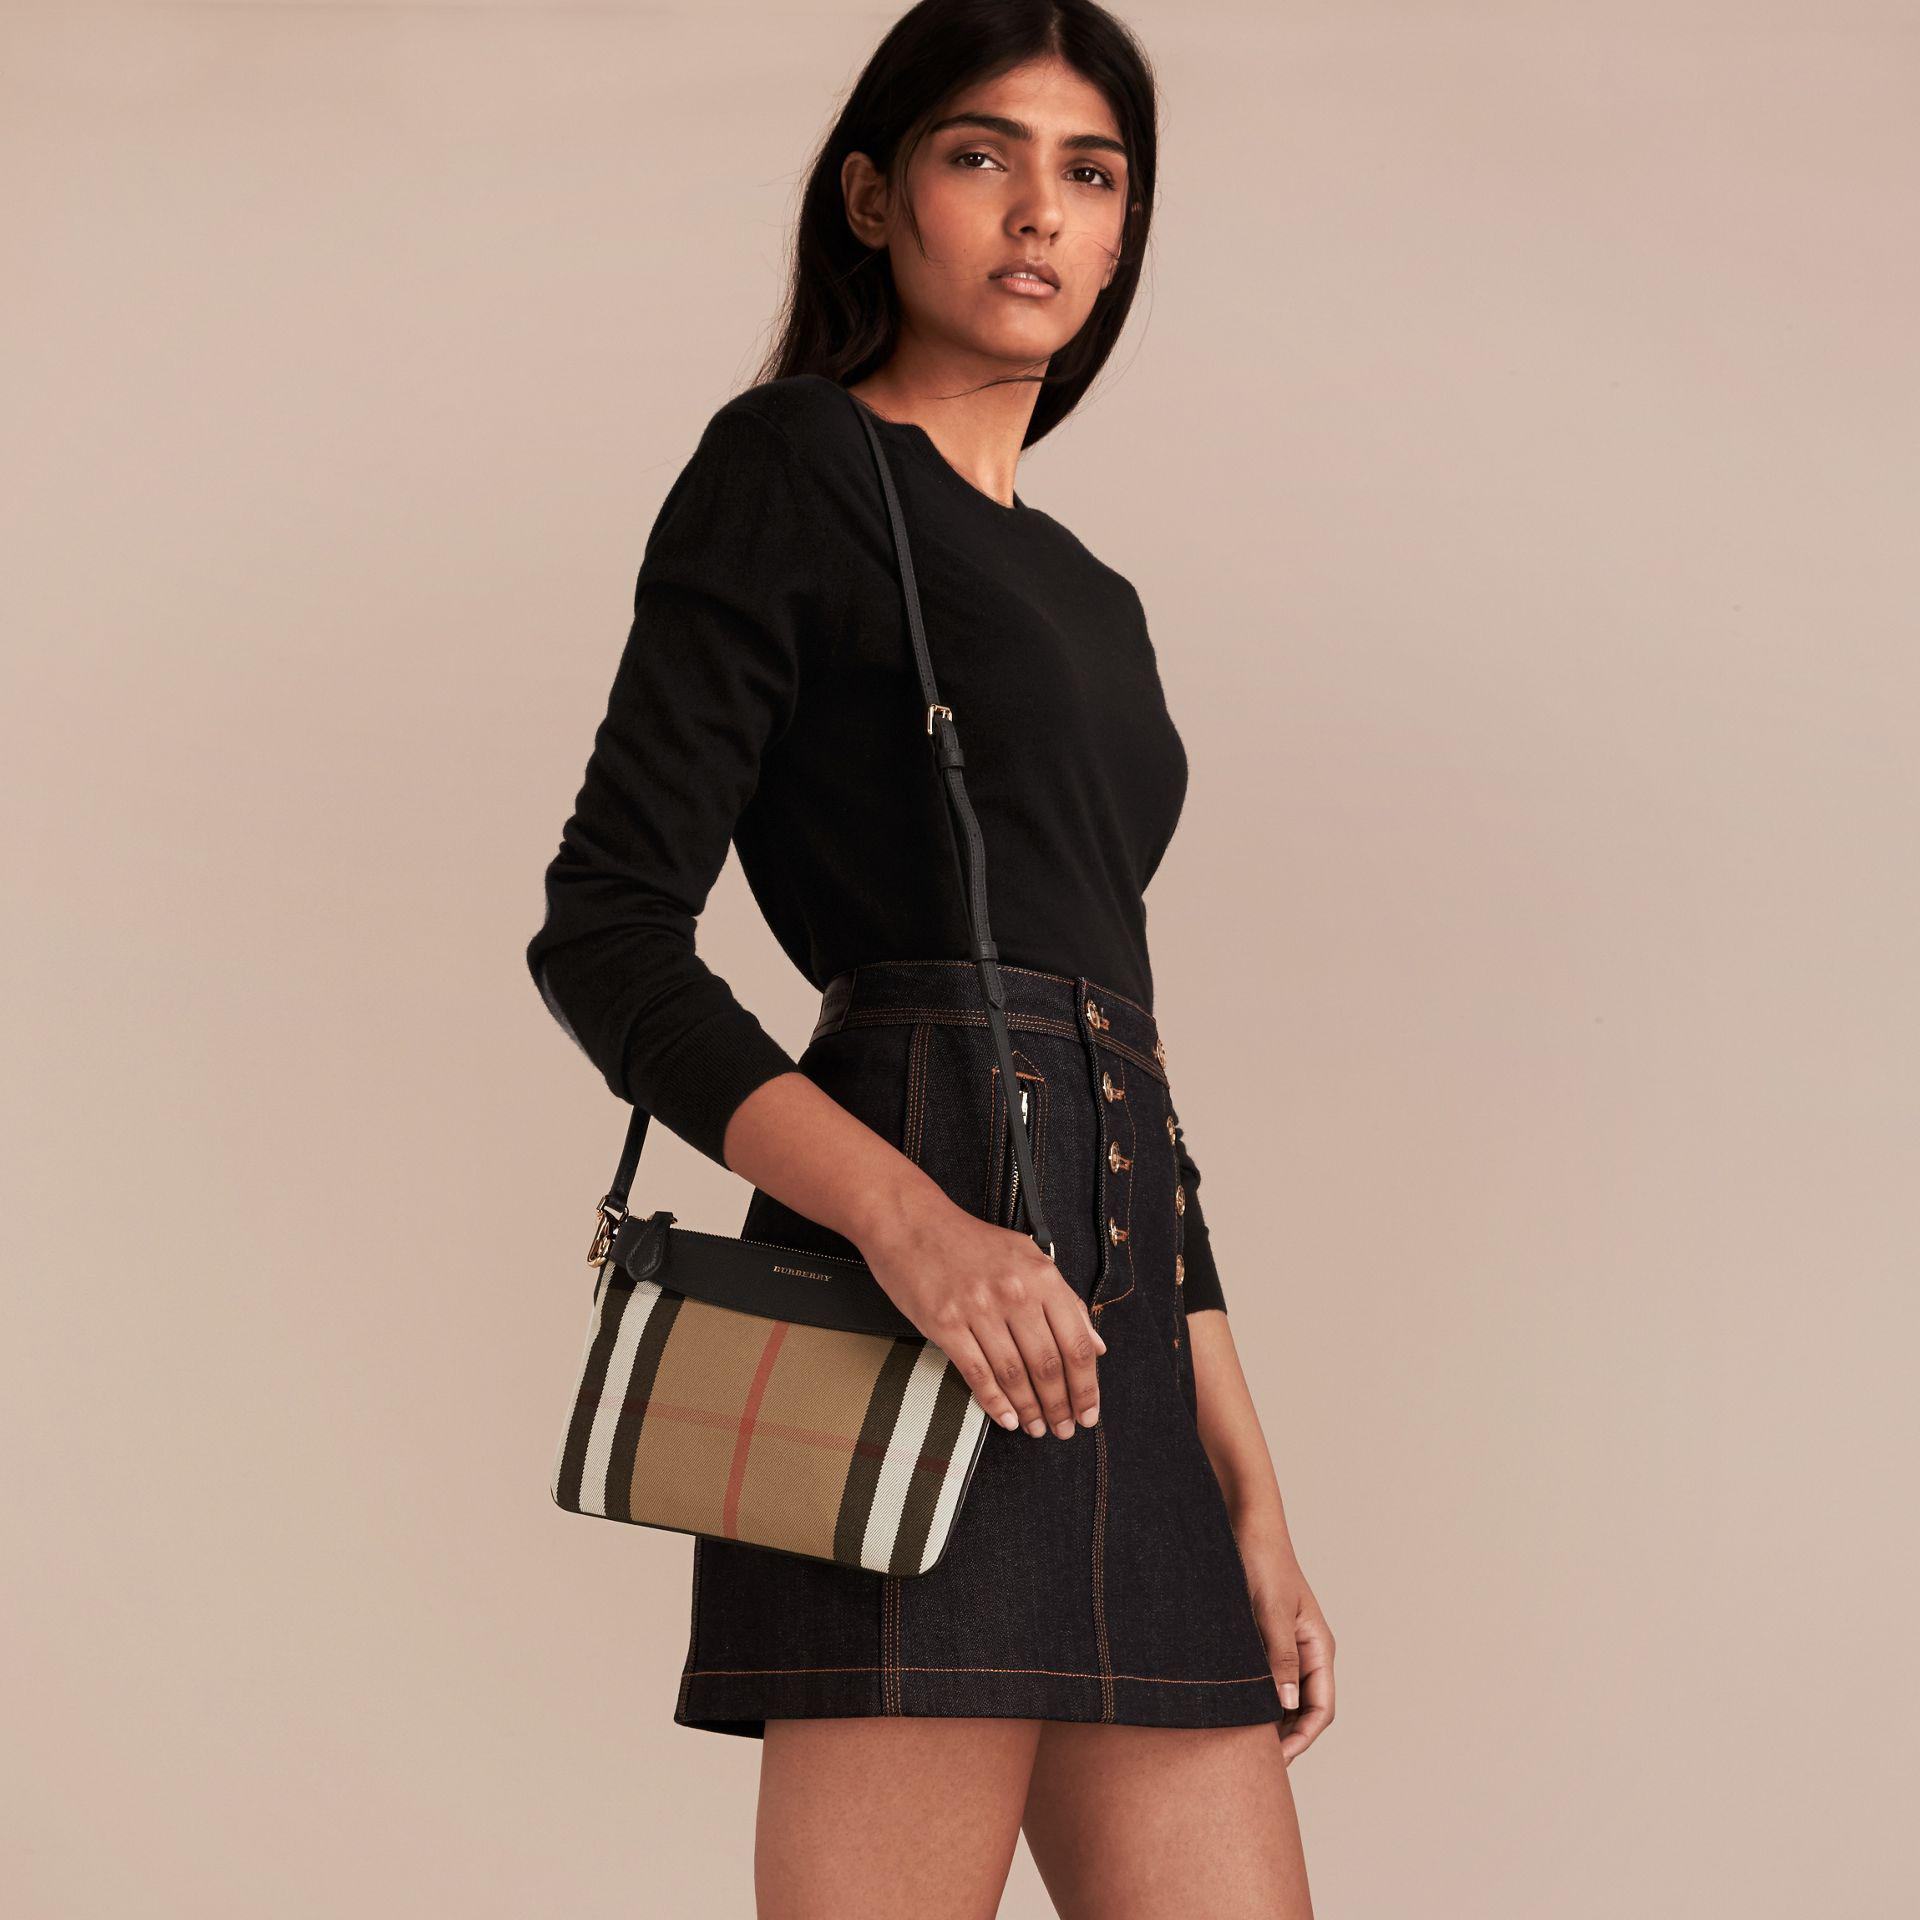 Lyst - Burberry House Check And Leather Clutch Bag in Black becc513e4acb5